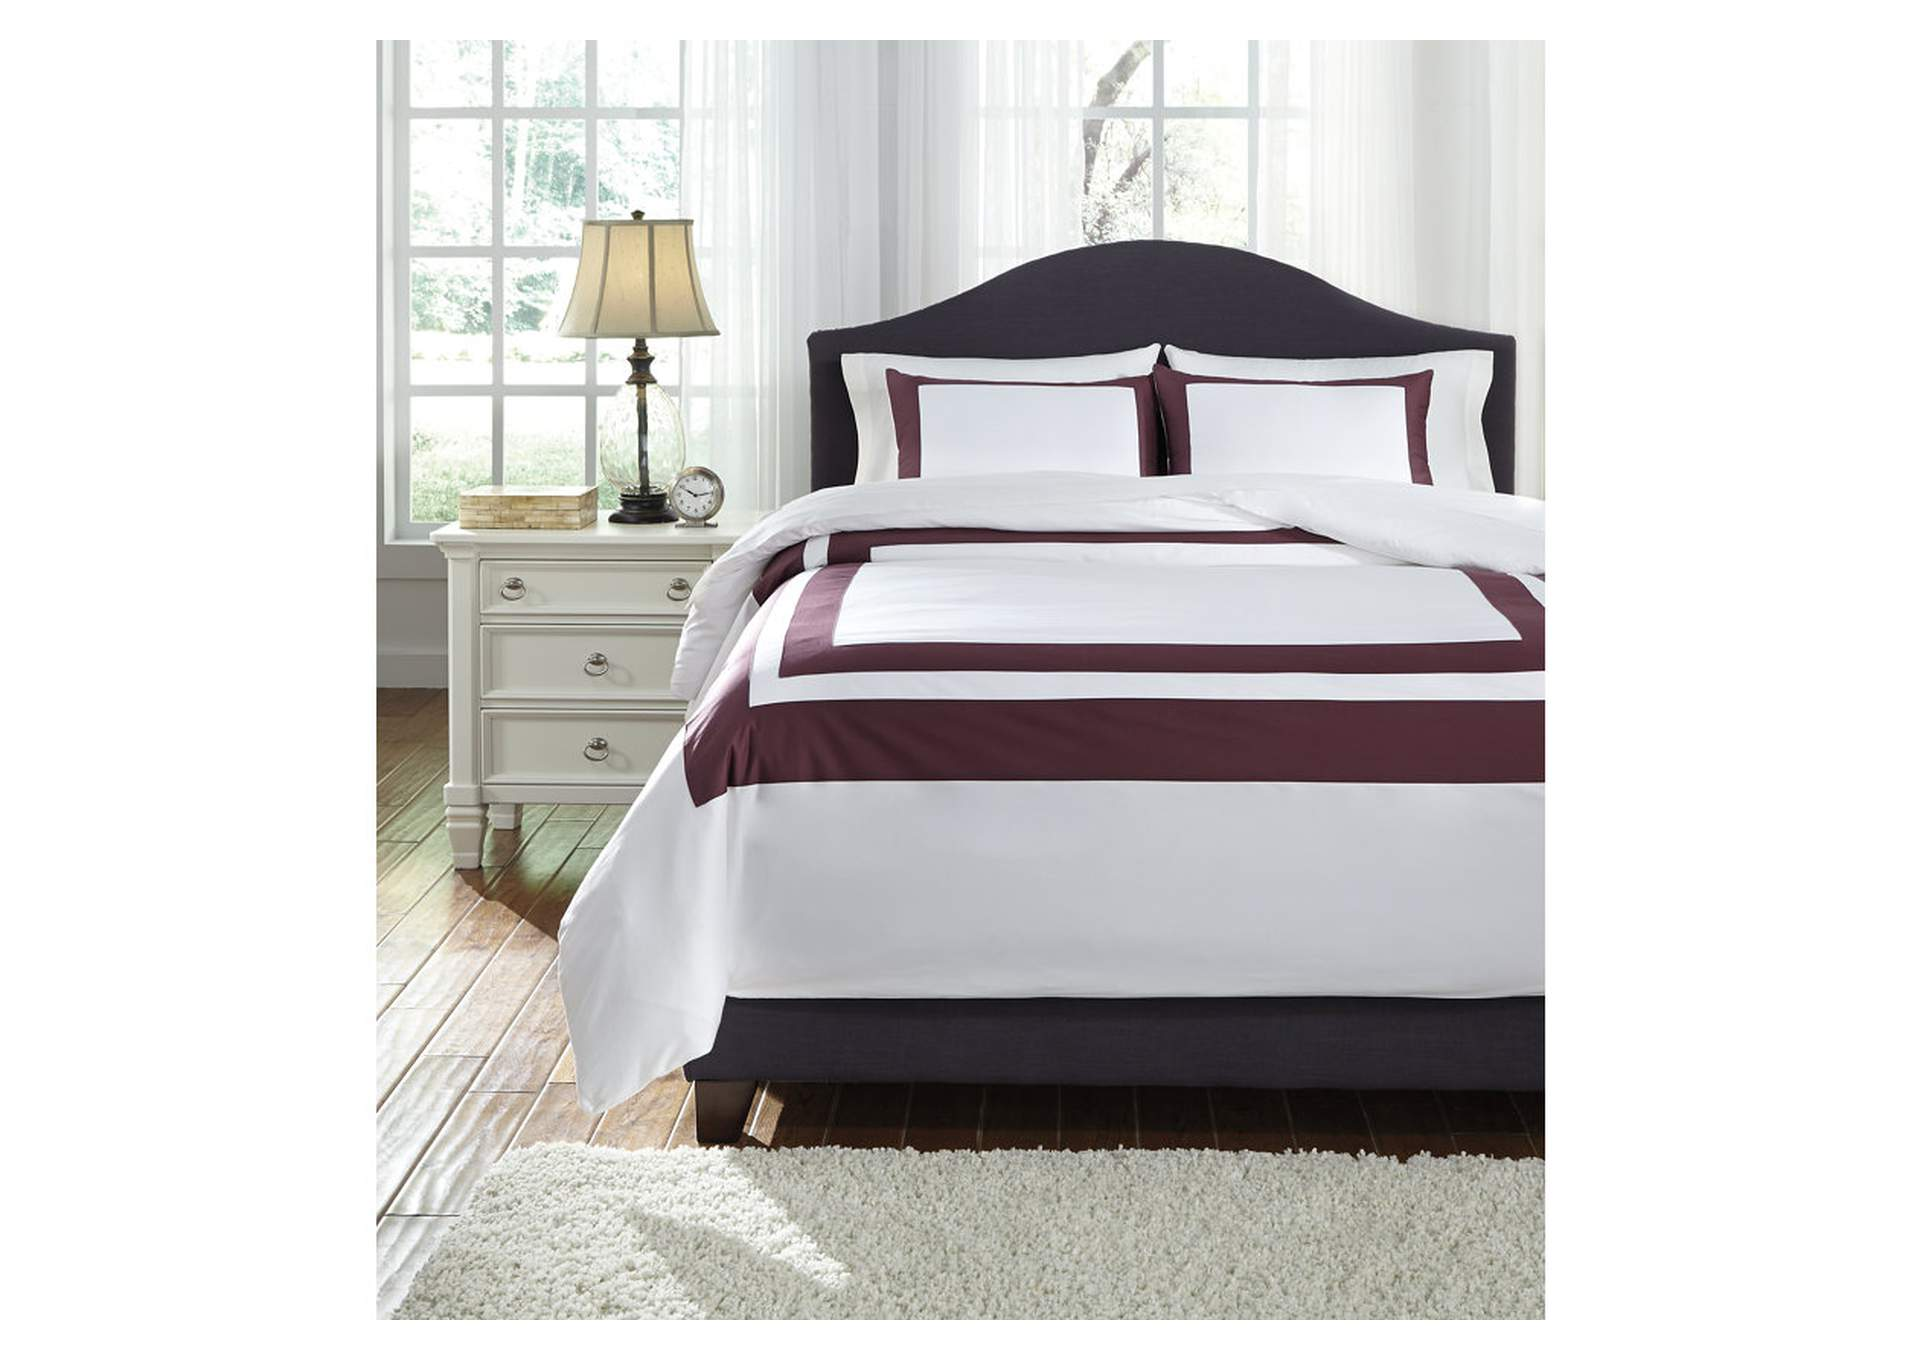 Daruka Plum Queen Duvet Cover Set,Signature Design By Ashley